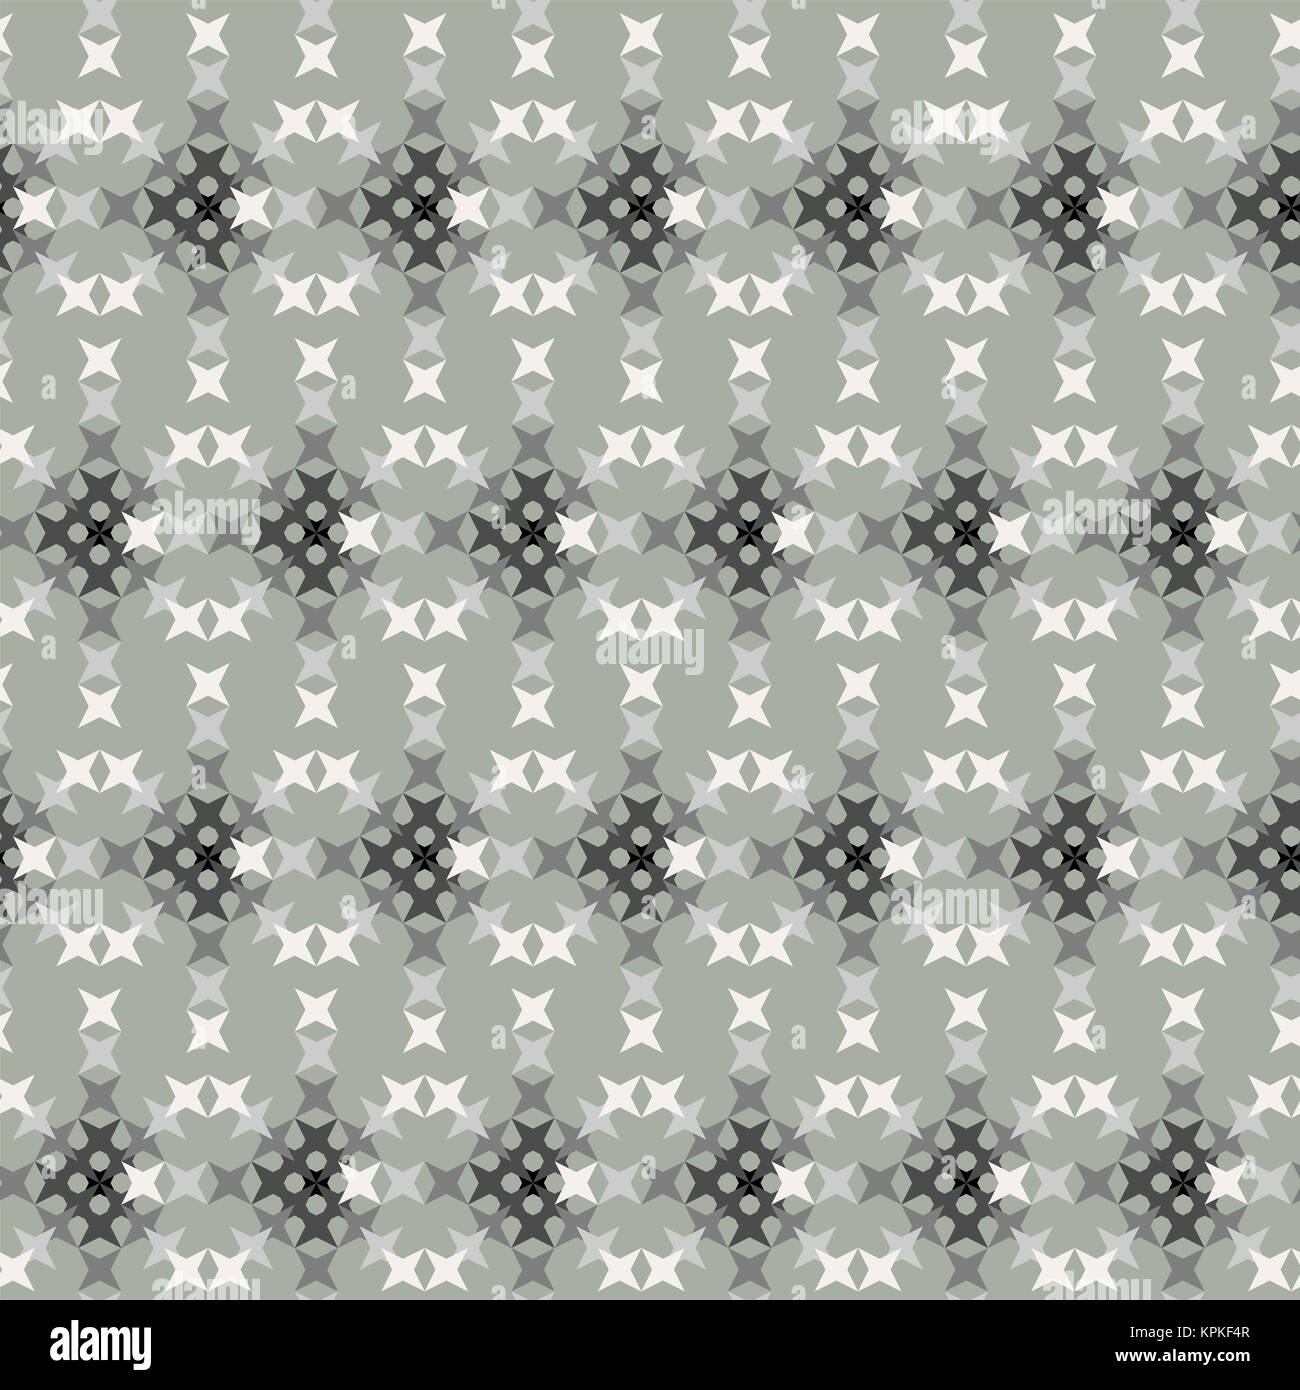 Motif Wallpaper Abstrak Seamless Abstract Cross Stitch Embroidery Pattern Stock Photo